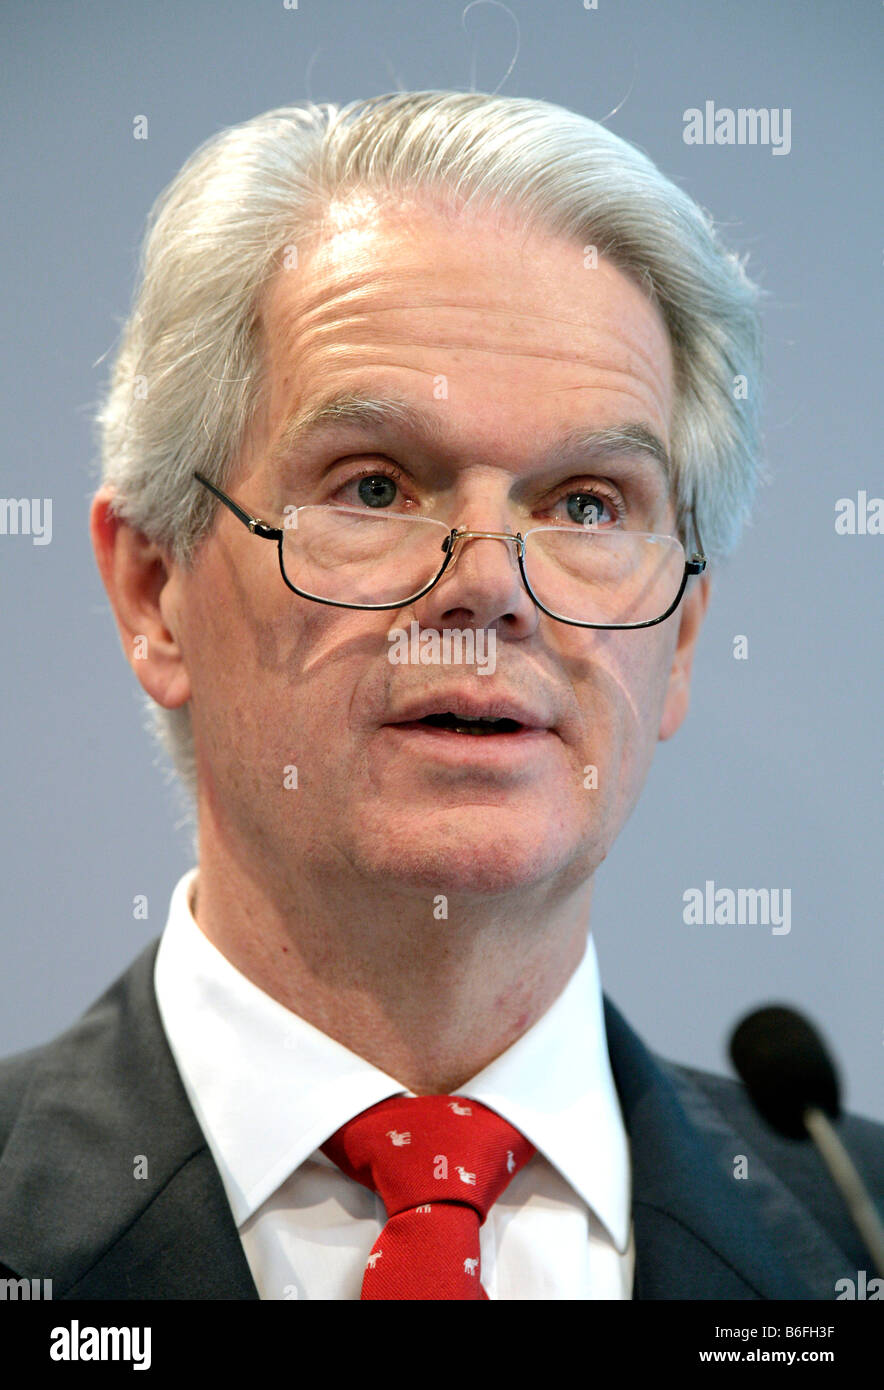 Peter-Alexander Wacker, Chairman and designated supervisory board chairman of Wacker Chemie AG, during the press - Stock Image